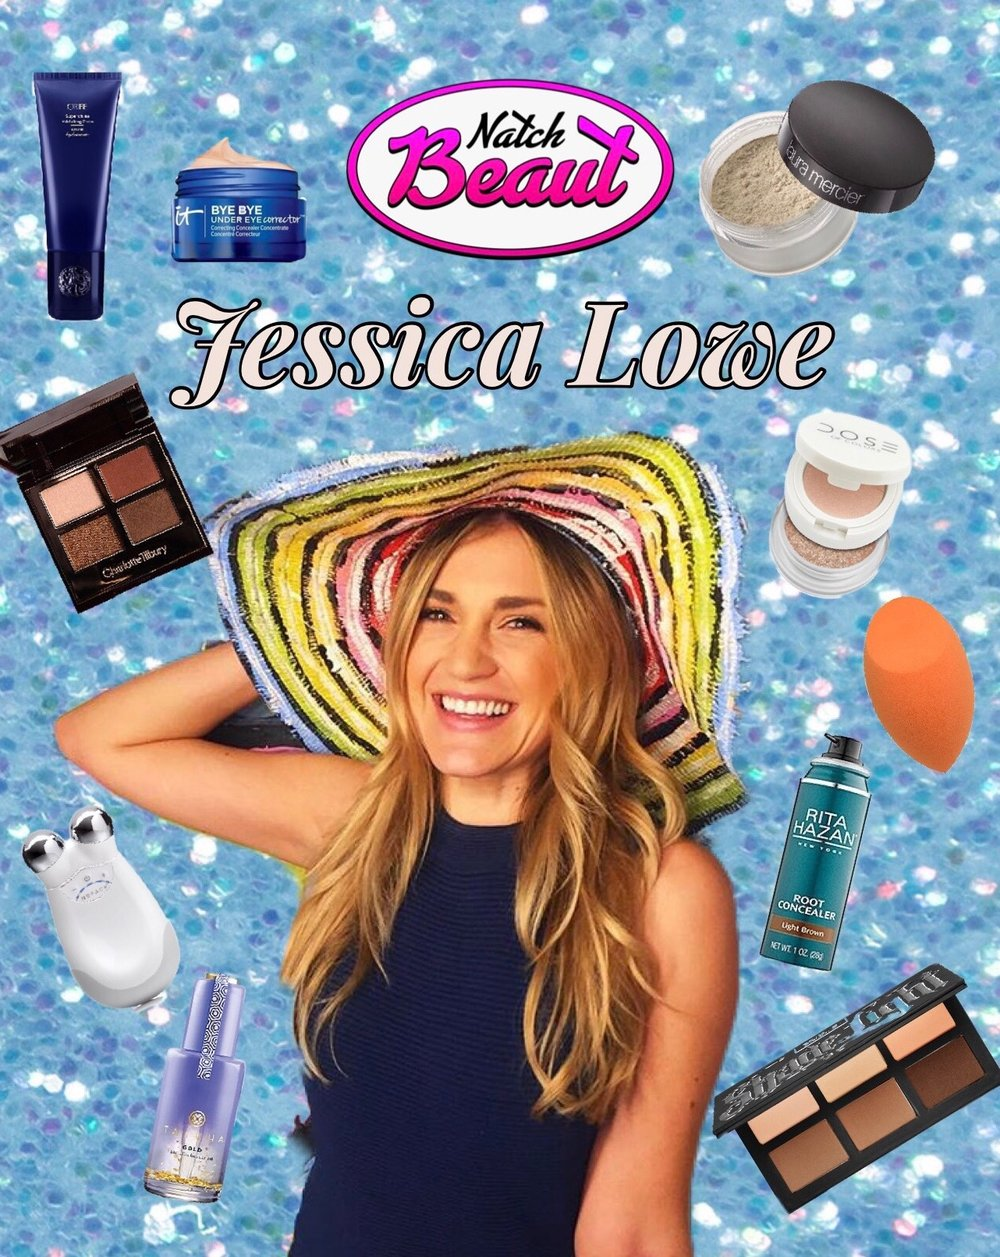 0a44ff51fbb Costco Haul with Jessica Lowe Episode Guide — Natch Beaut